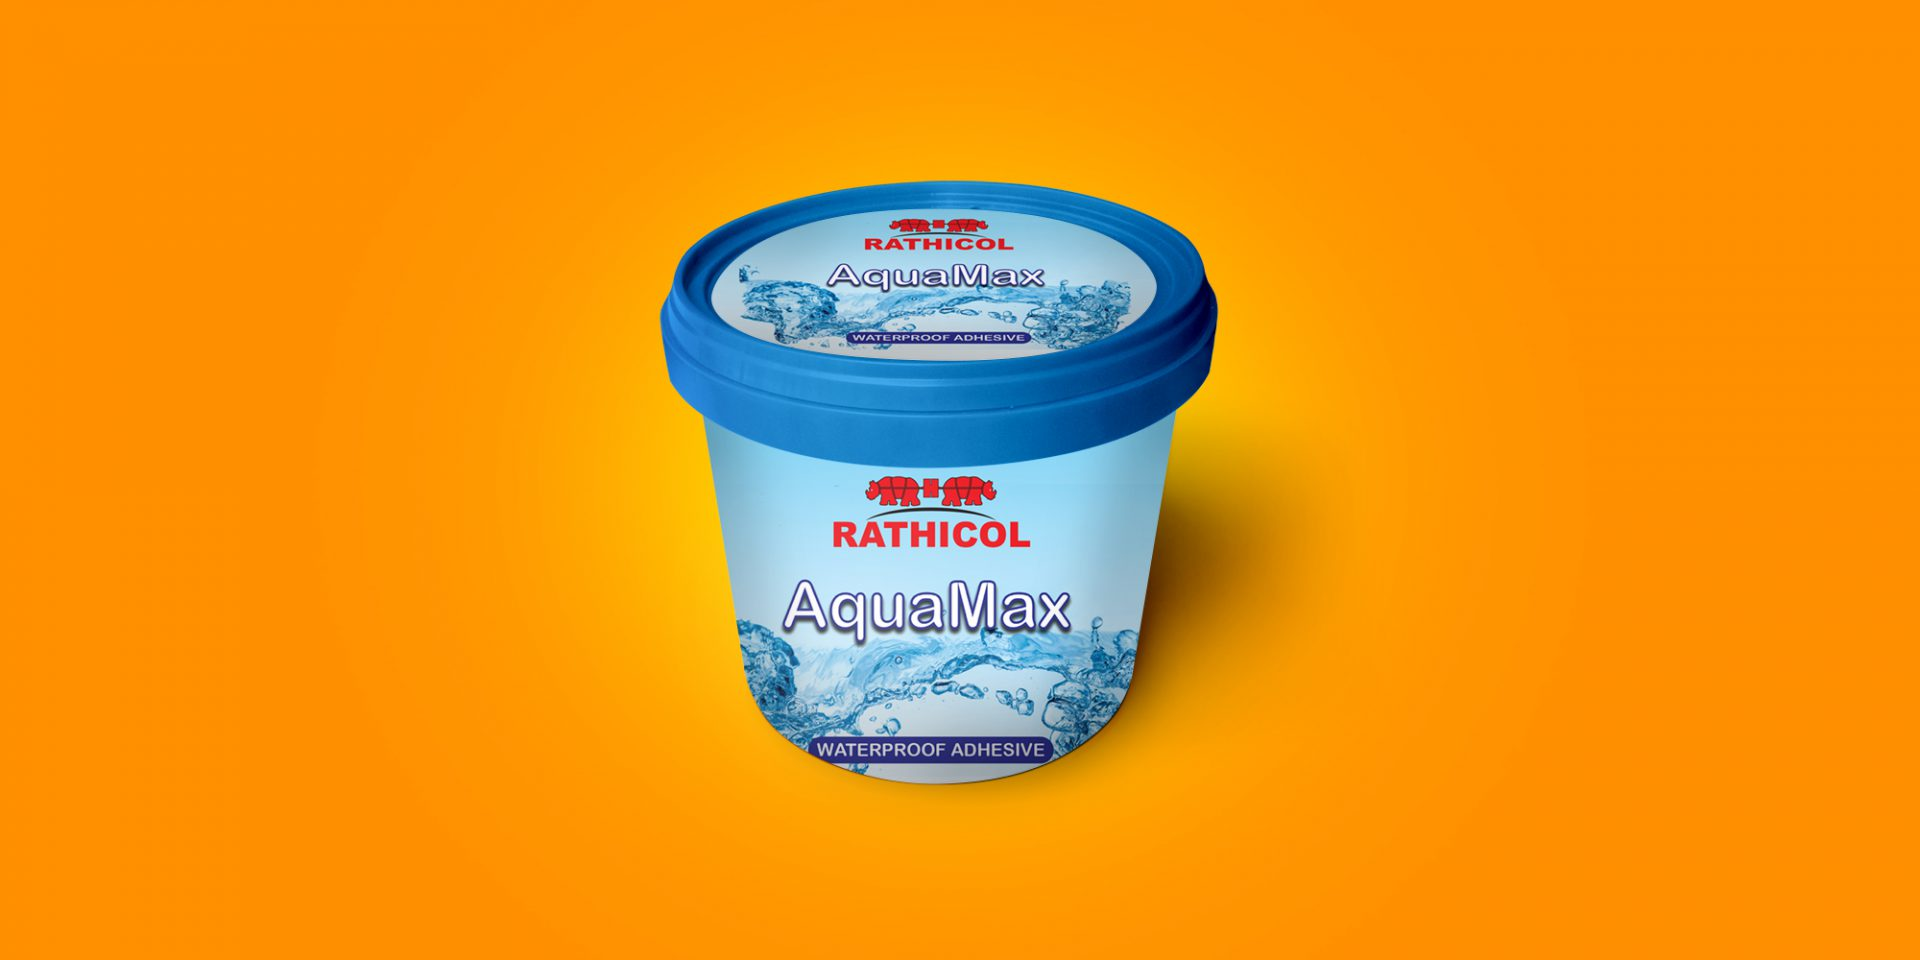 Rathicol Waterproof Adhesive Container Design